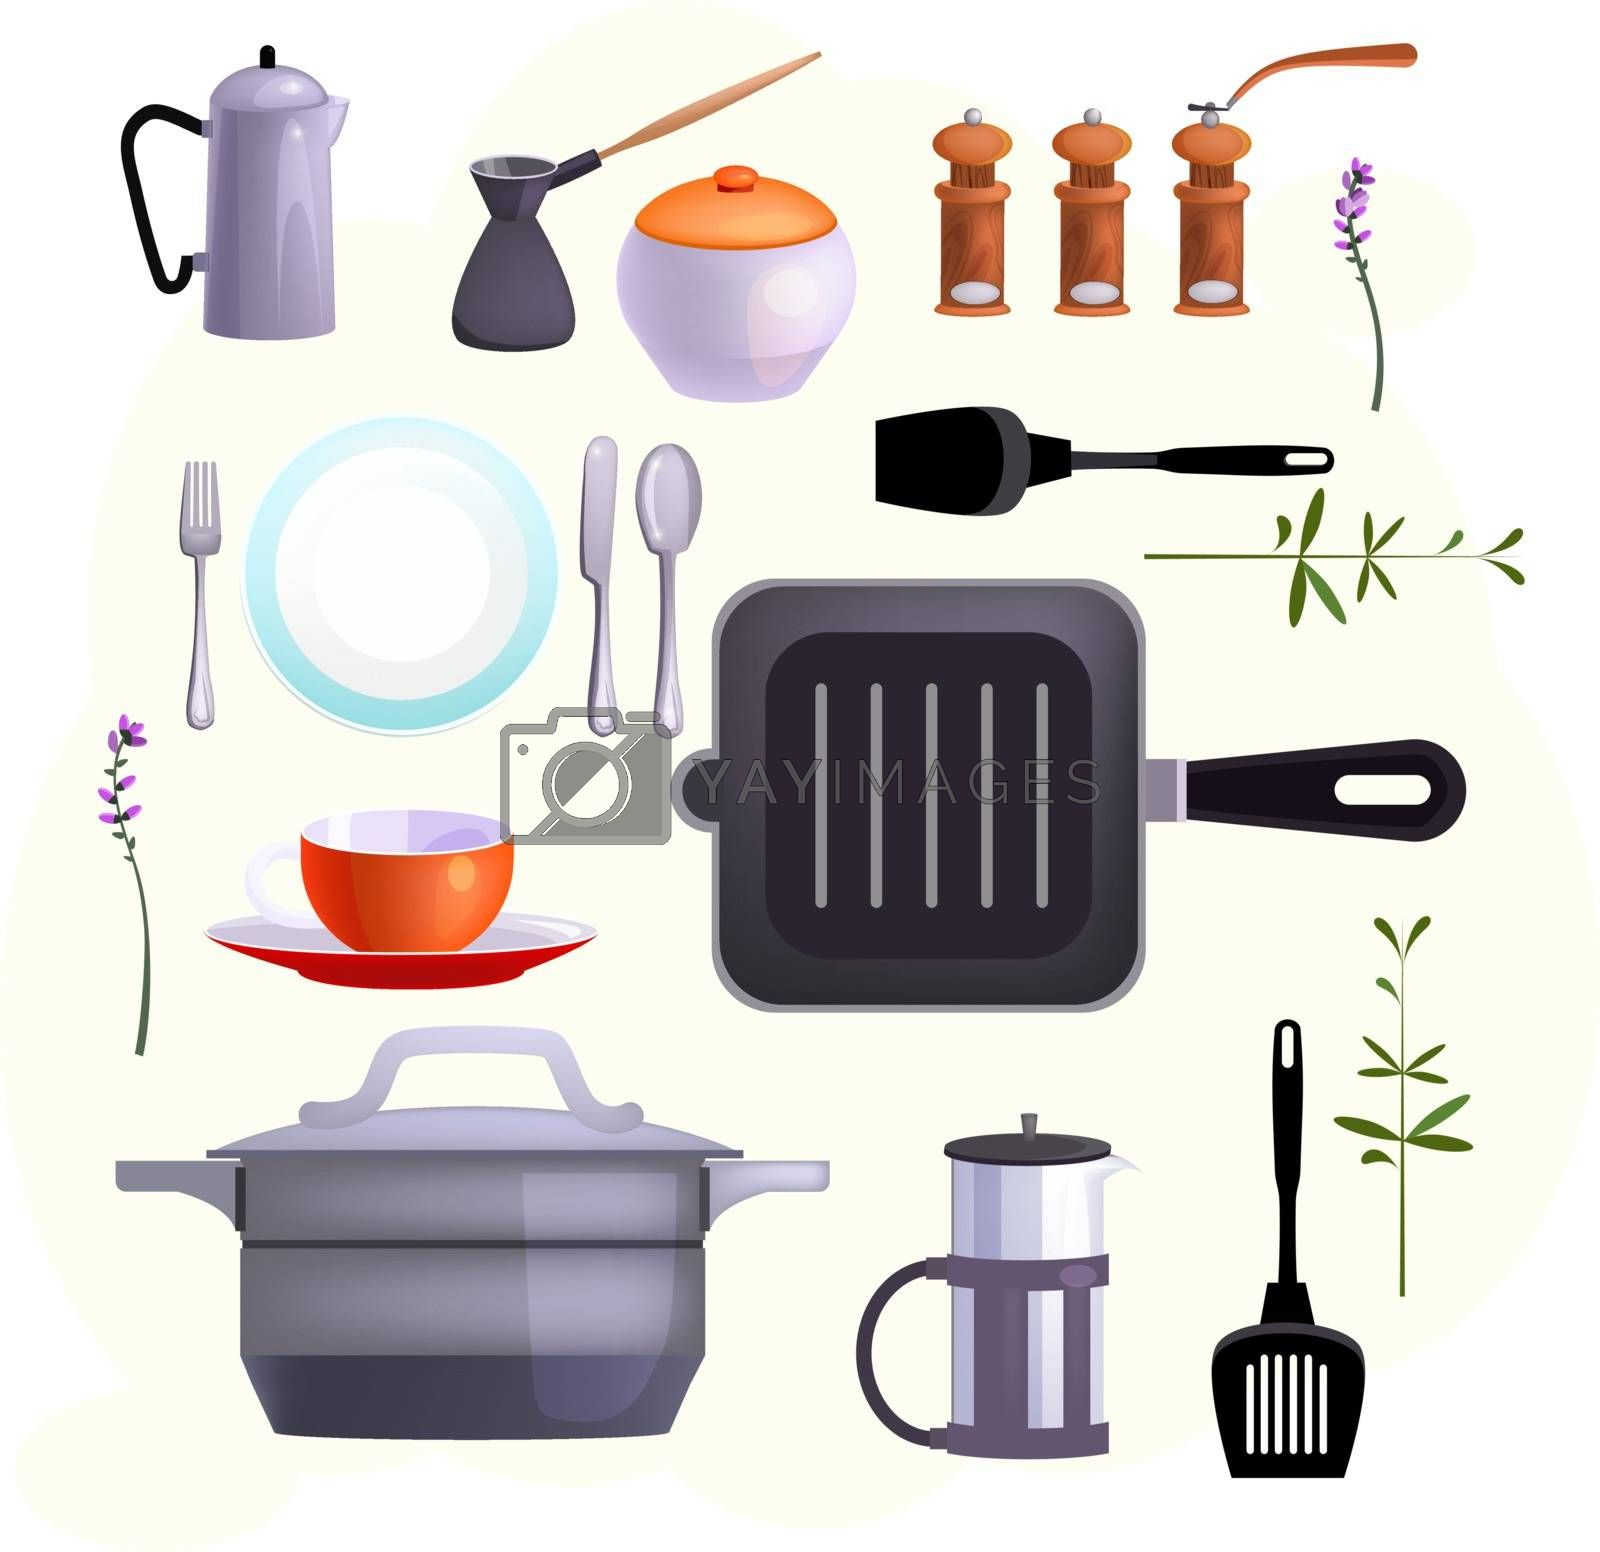 Kitchen equipment icons. Set of line icons. Cutlery, cup, French press. Cooking concept. Illustrations can be used for topics like kitchen, cooking, eating